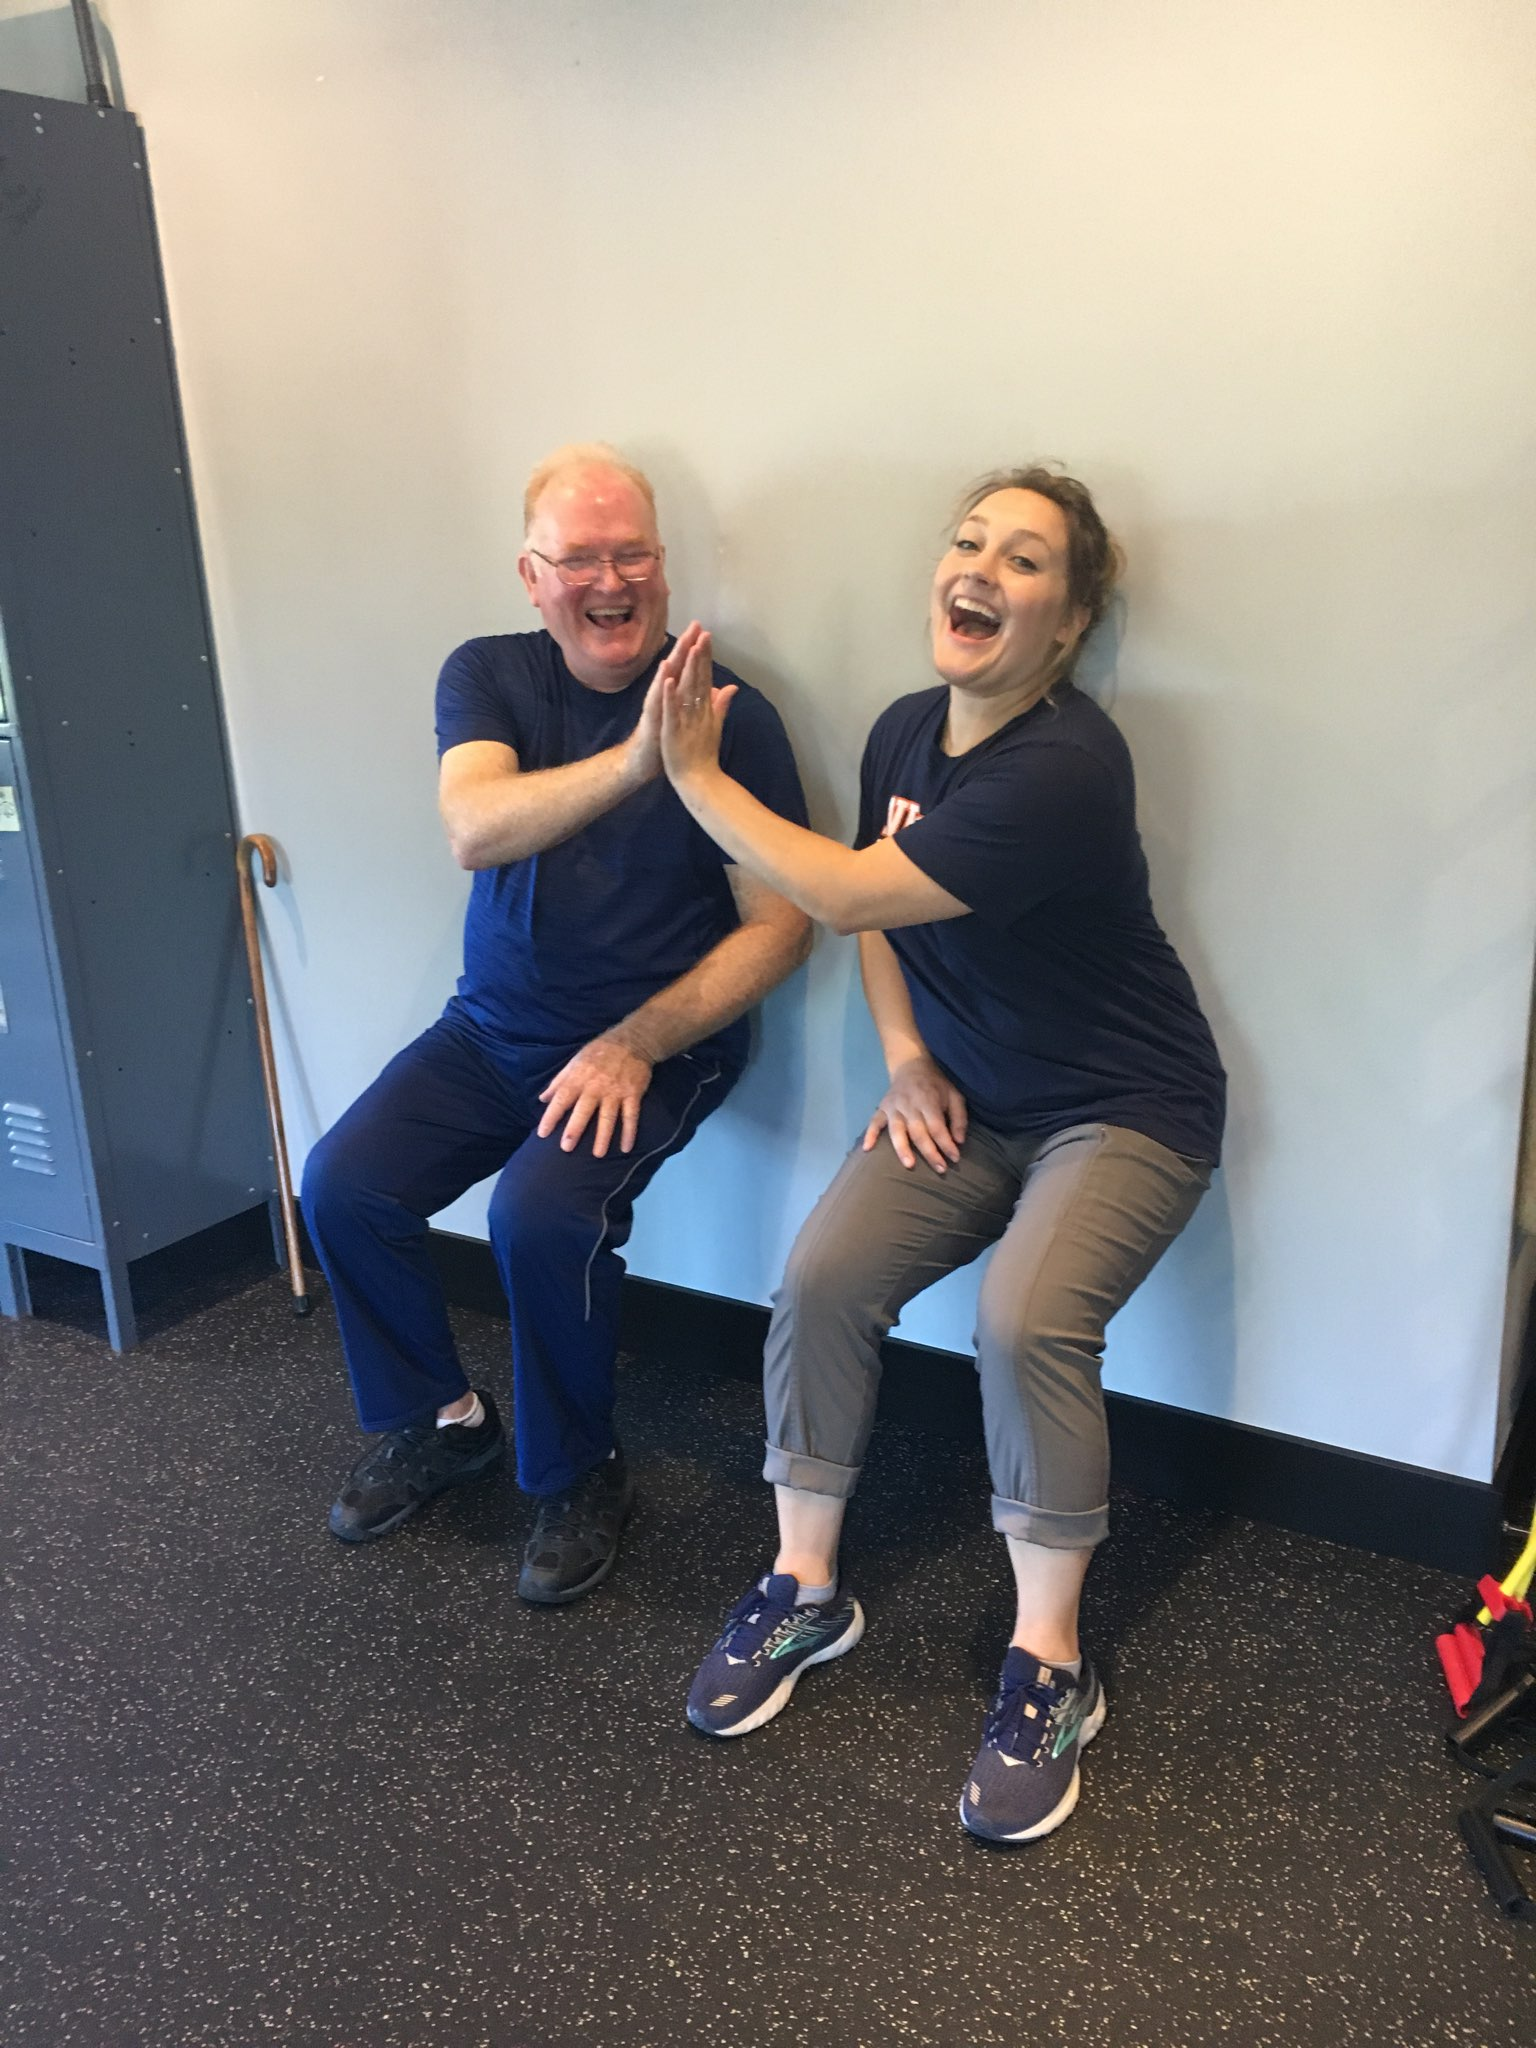 Nephew Physical Therapy | Physical Therapy Holland Michigan